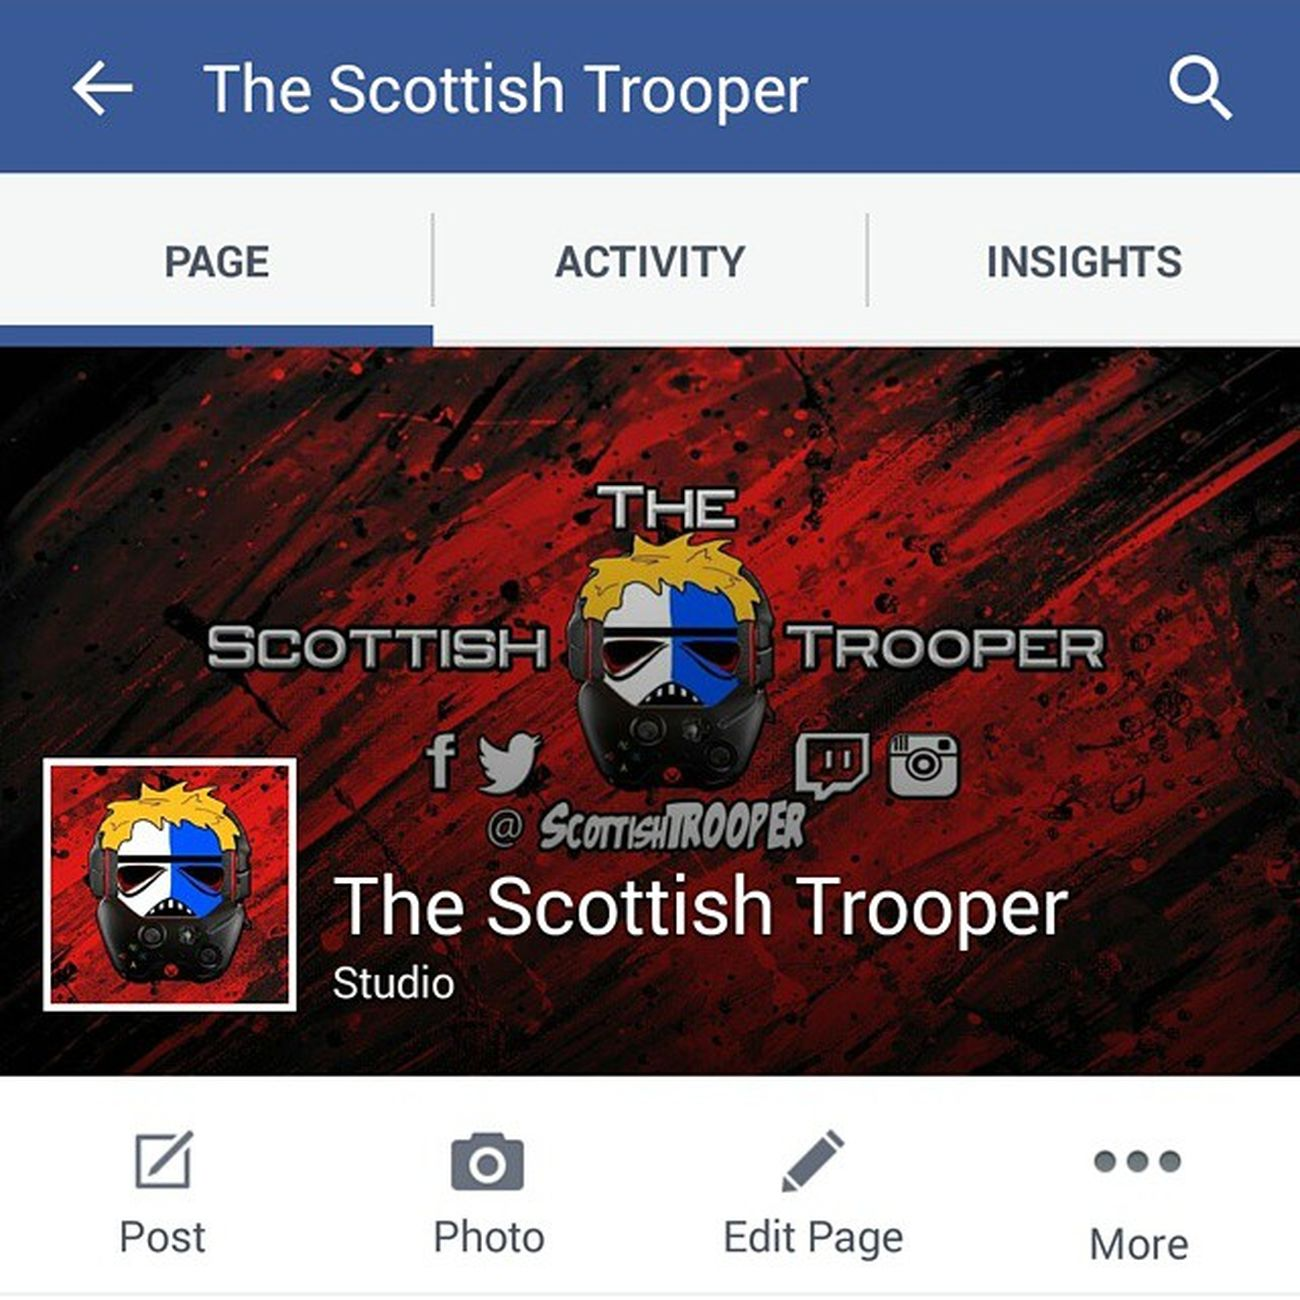 Facebook isnt as popular as it once was.... But it still exists. Like the page 😀 Also follow on Twitter: @scottishTR00PER Twitch: @scottishTR00PER Subscribe on Youtube. Www.youtube.com/thescottishtrooper Major revamp happening to all pages! Be apart of it Nextgen Glasgow  TheScottishTrooper XboxOne nextgen retrogaming elgatogamecapture elgatohd elgato corsair razor gtaonline scotland geek gamerguy gamerdude geekyguy pc pcgamer ps4 psn minecraft mario pokemon battlefield callofduty